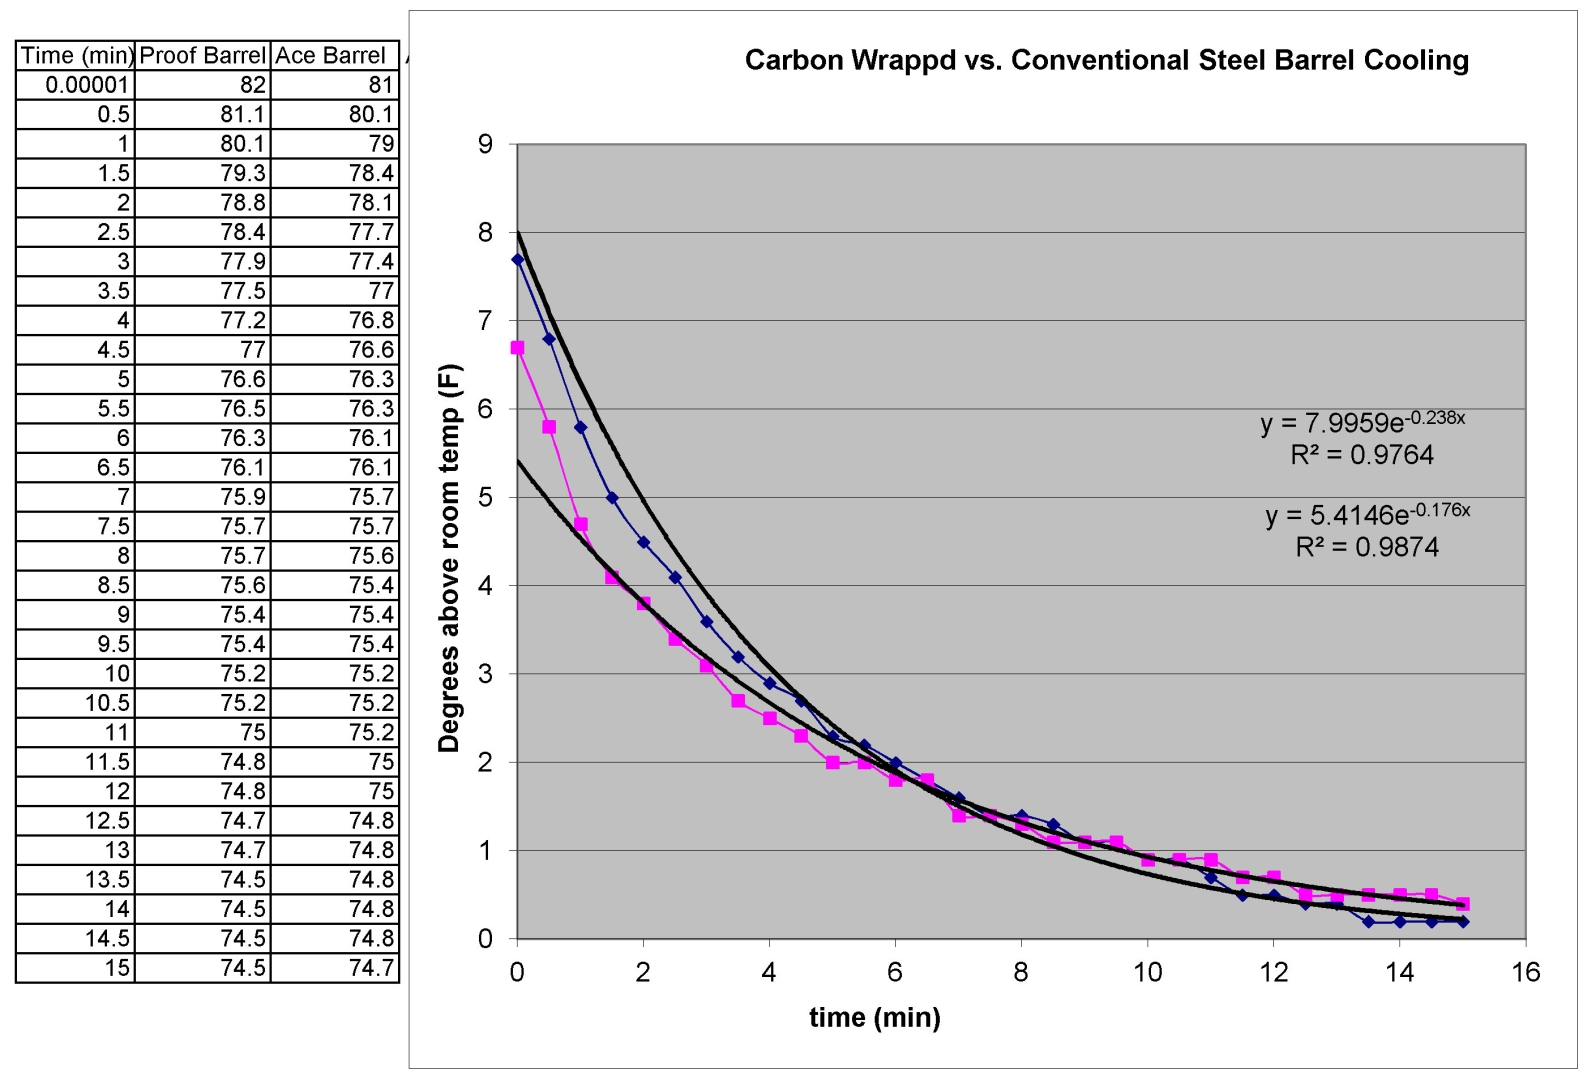 Plot of the Cooling of a Carbon Wrapped Proof Barrel vs. Conventional Steel Barrel